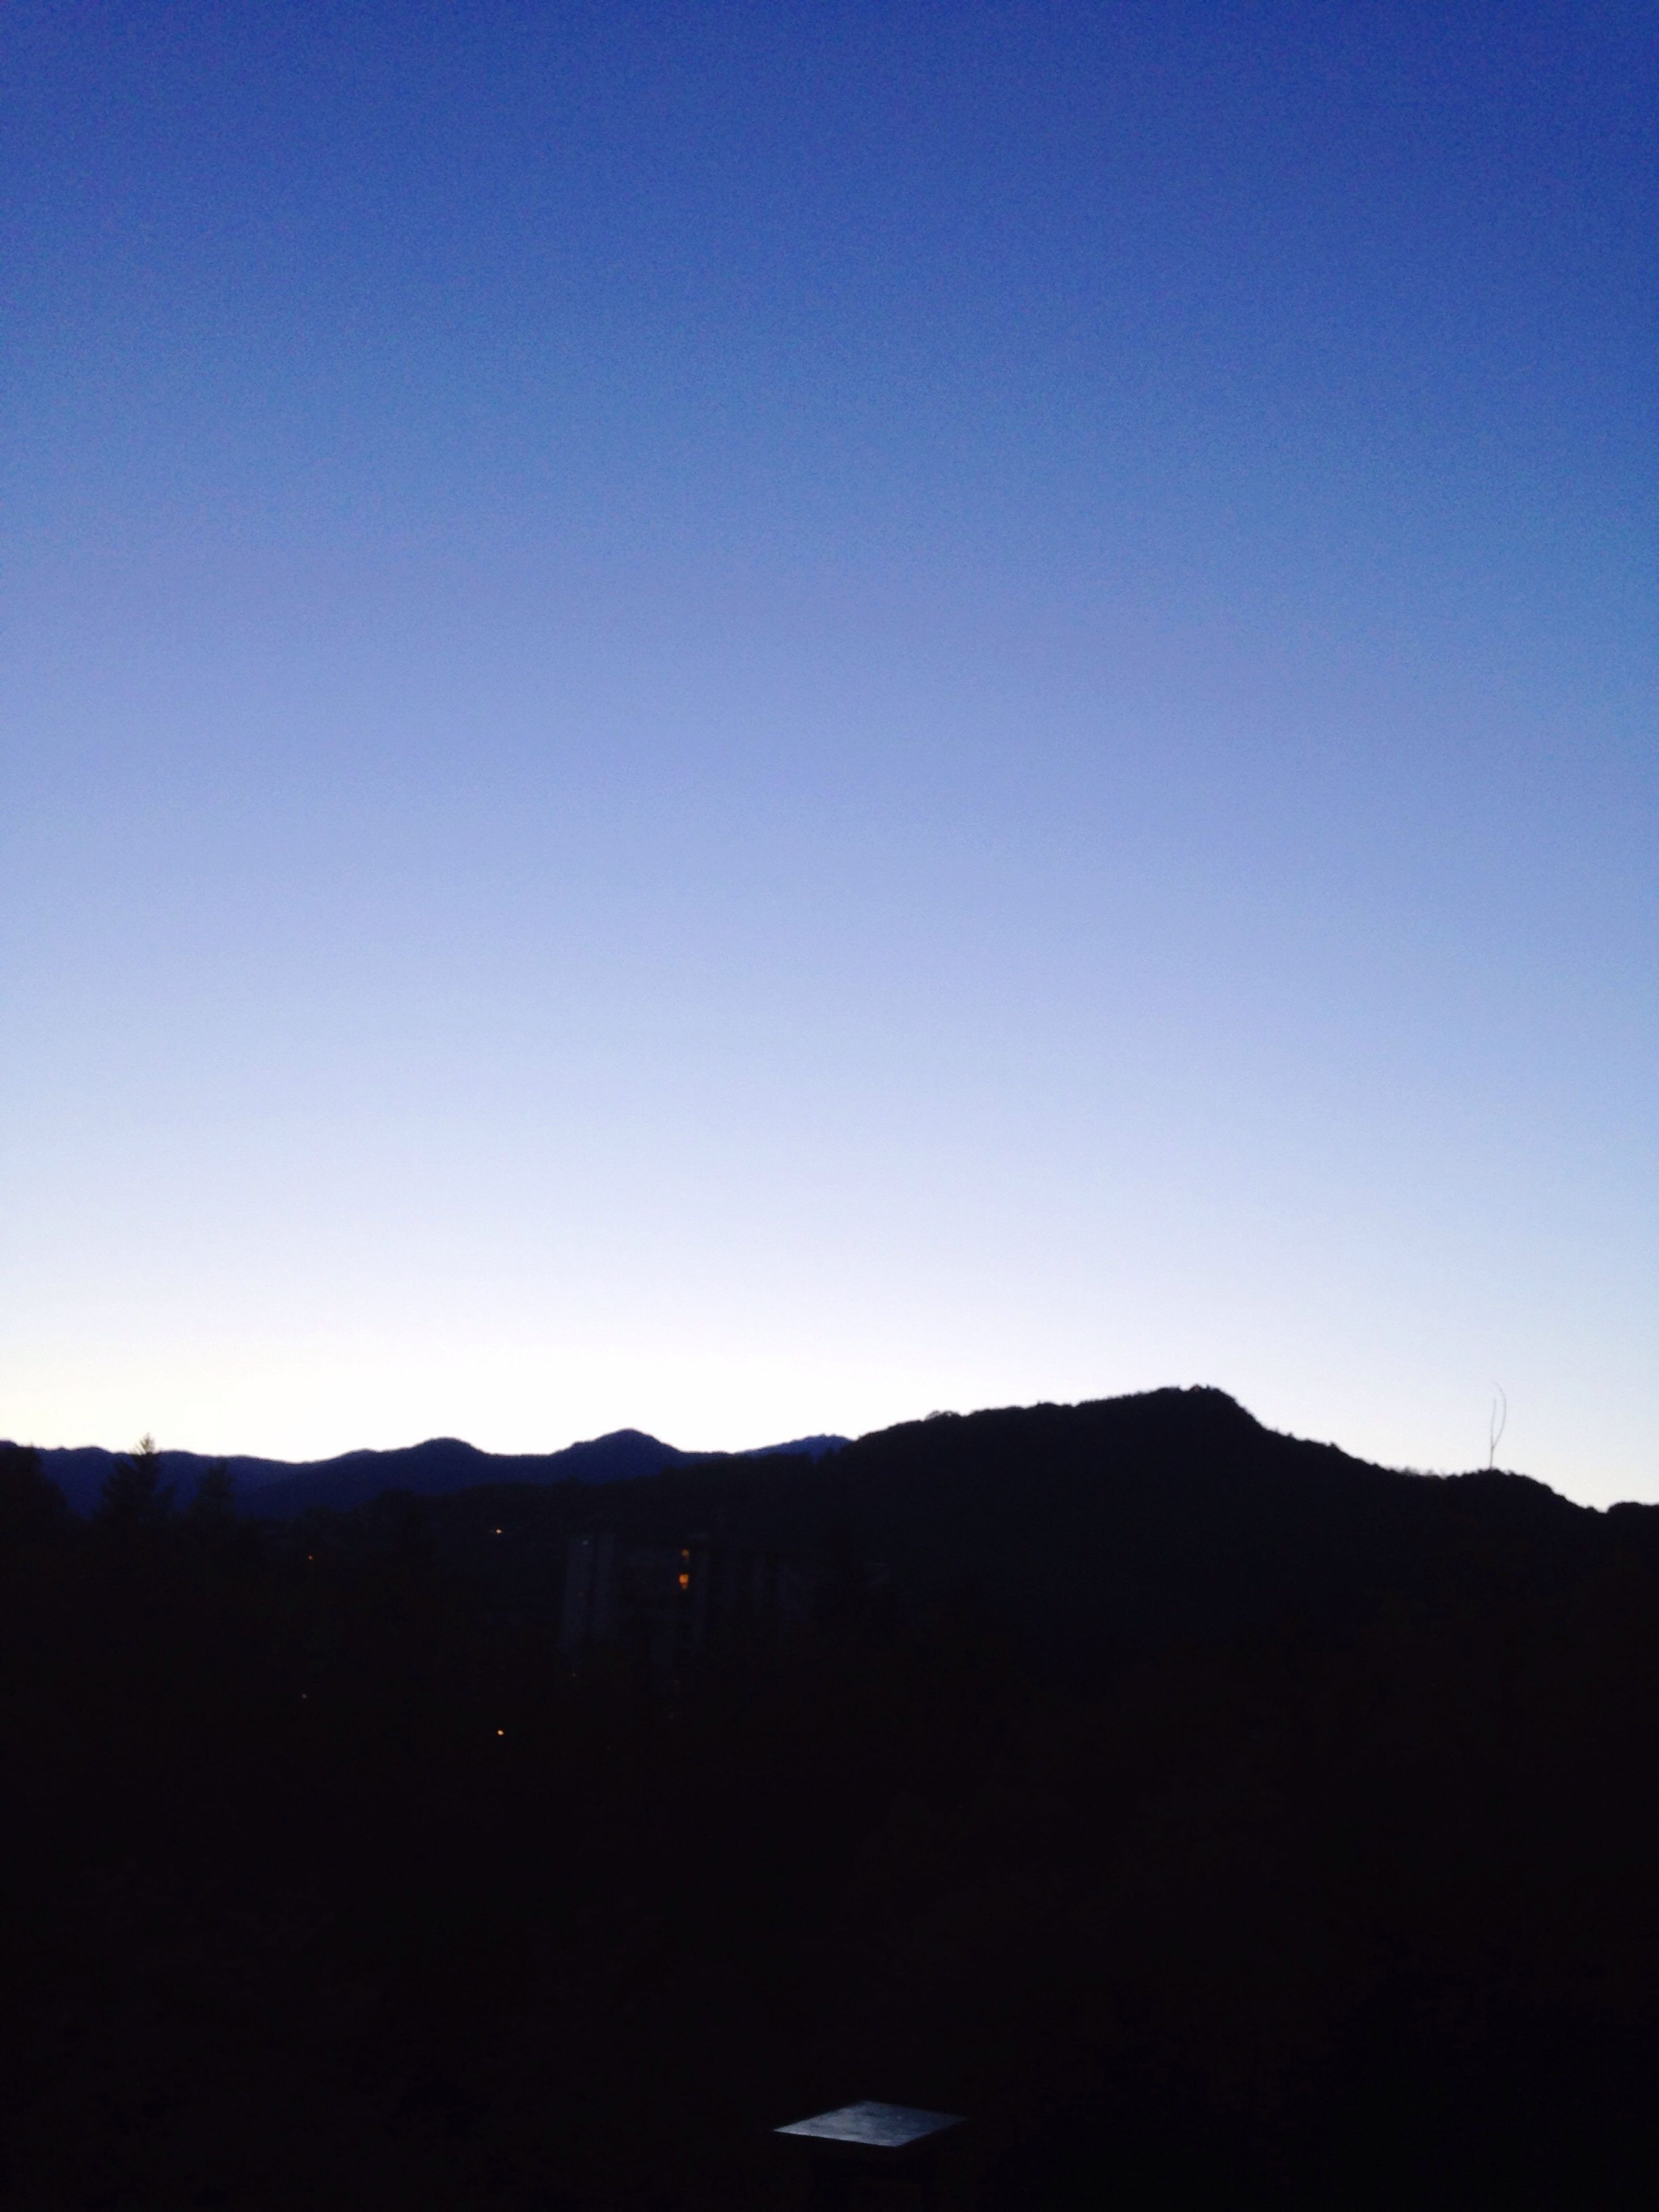 copy space, clear sky, mountain, blue, silhouette, tranquil scene, scenics, tranquility, beauty in nature, mountain range, nature, landscape, dusk, dark, outdoors, idyllic, no people, moon, night, non-urban scene